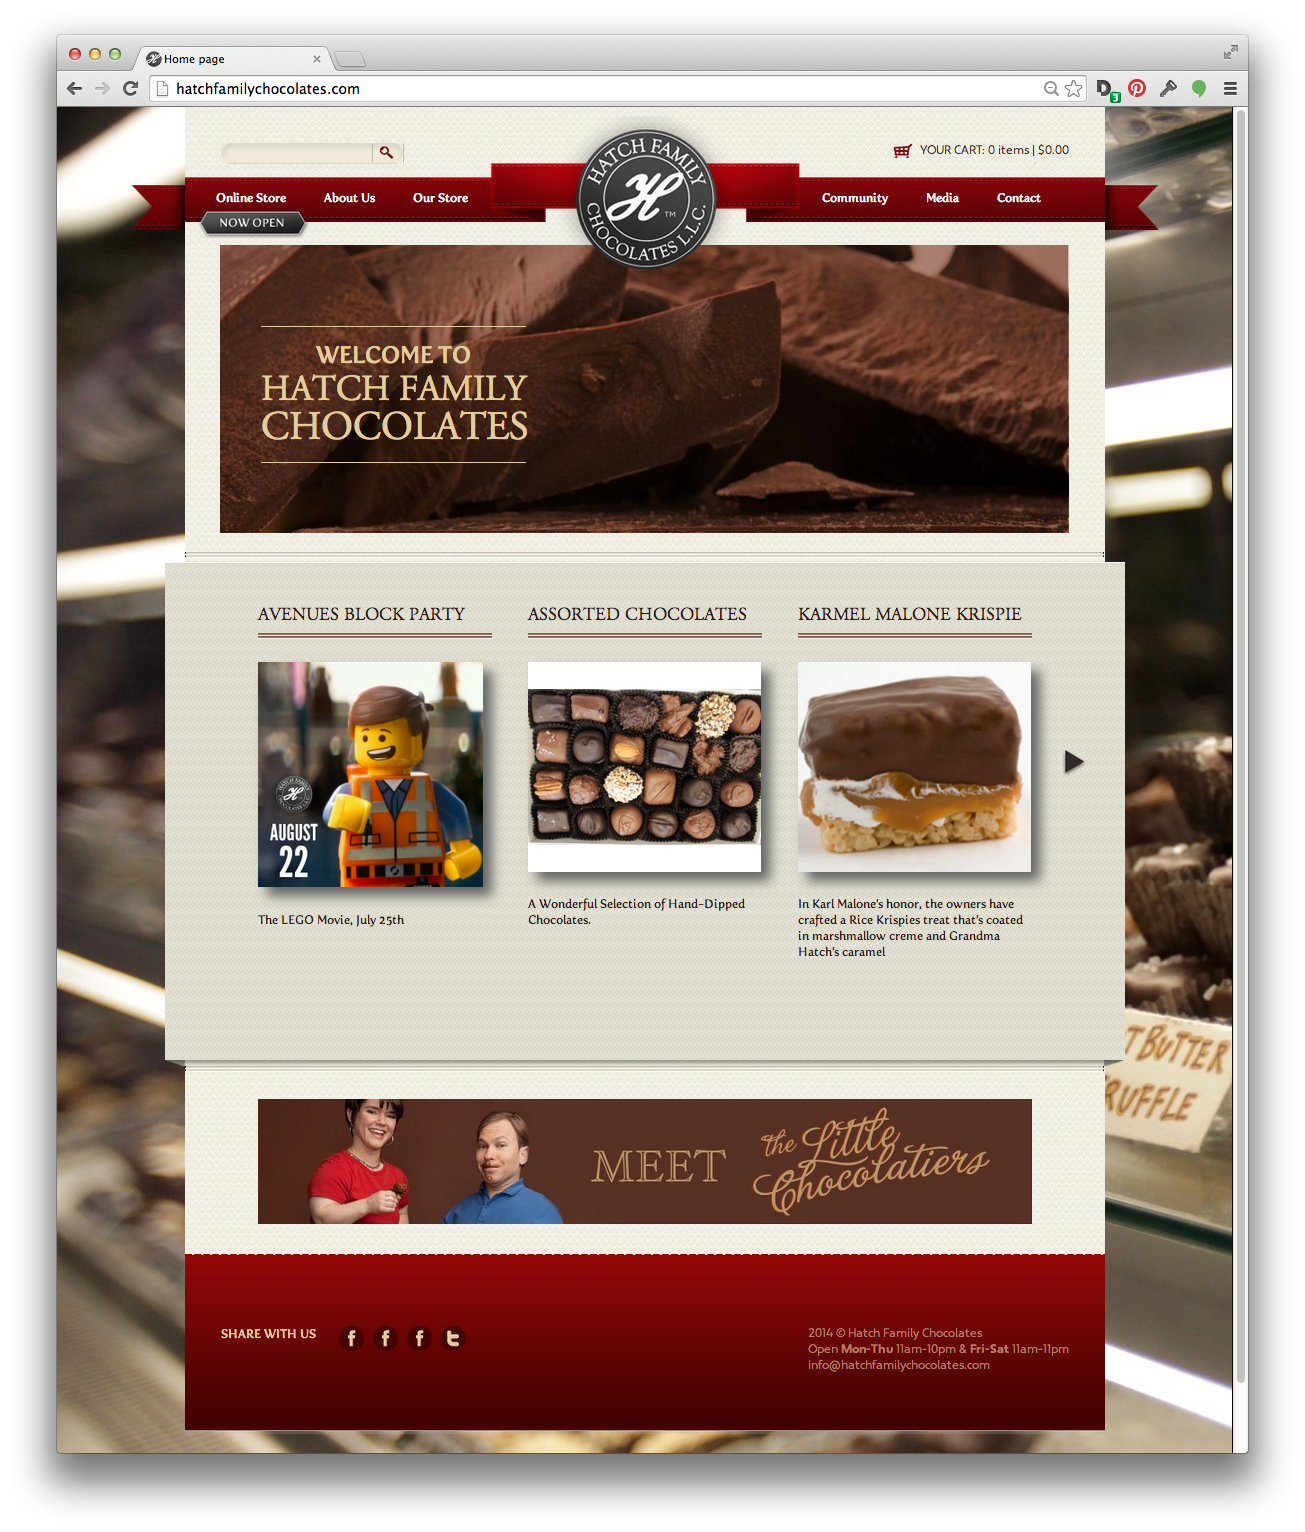 hatch-family-chocolates-web-design